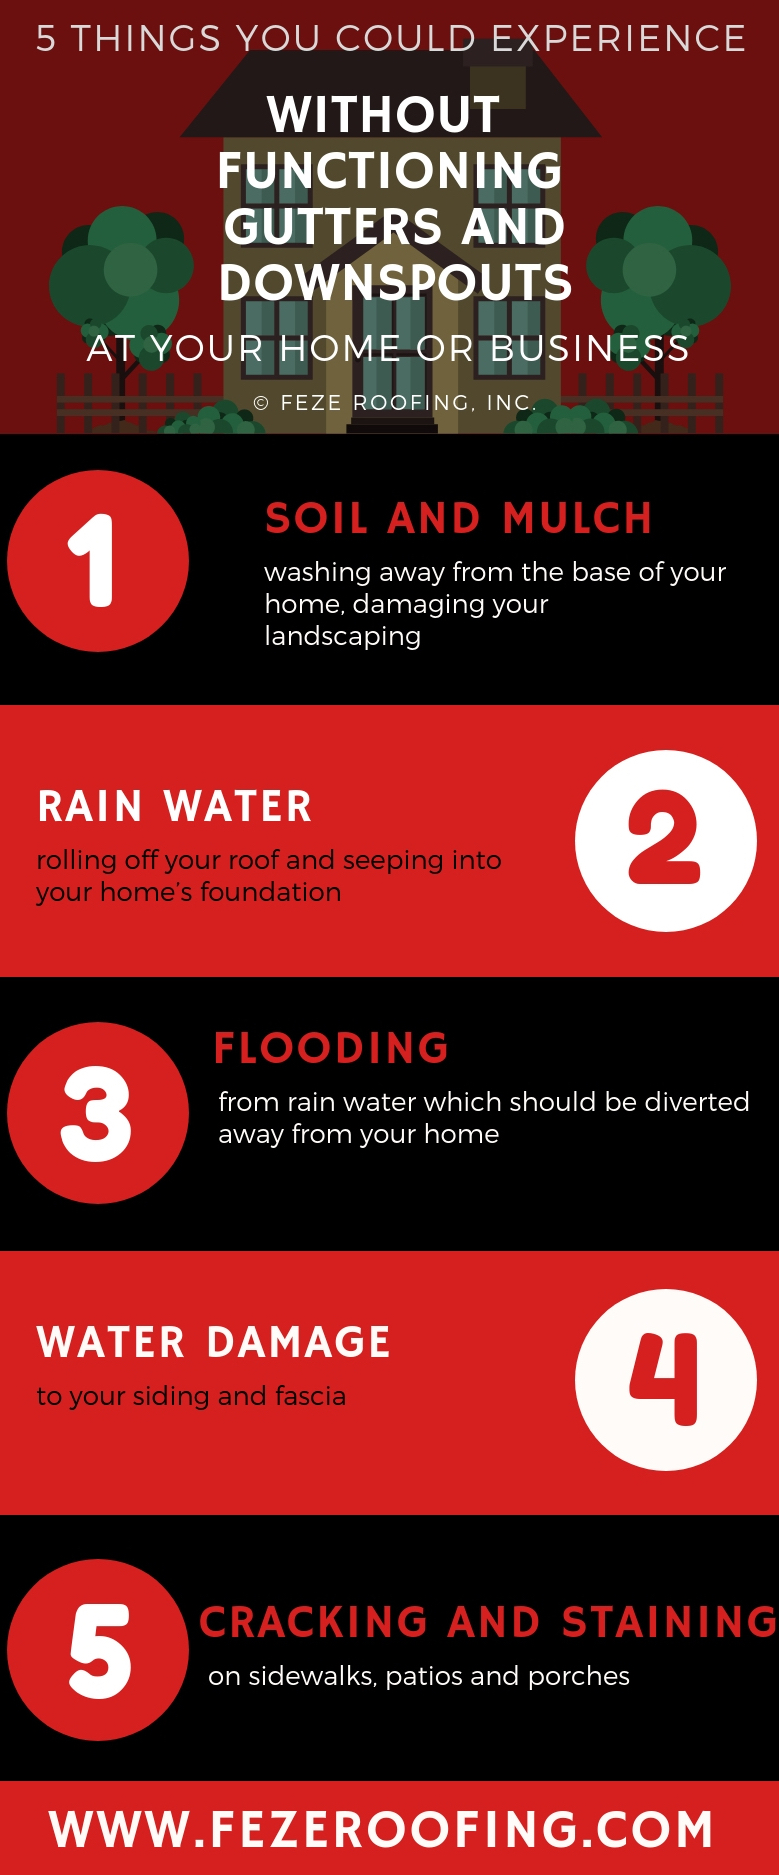 Feze Roofing Inc. ✓ Infographic.jpg